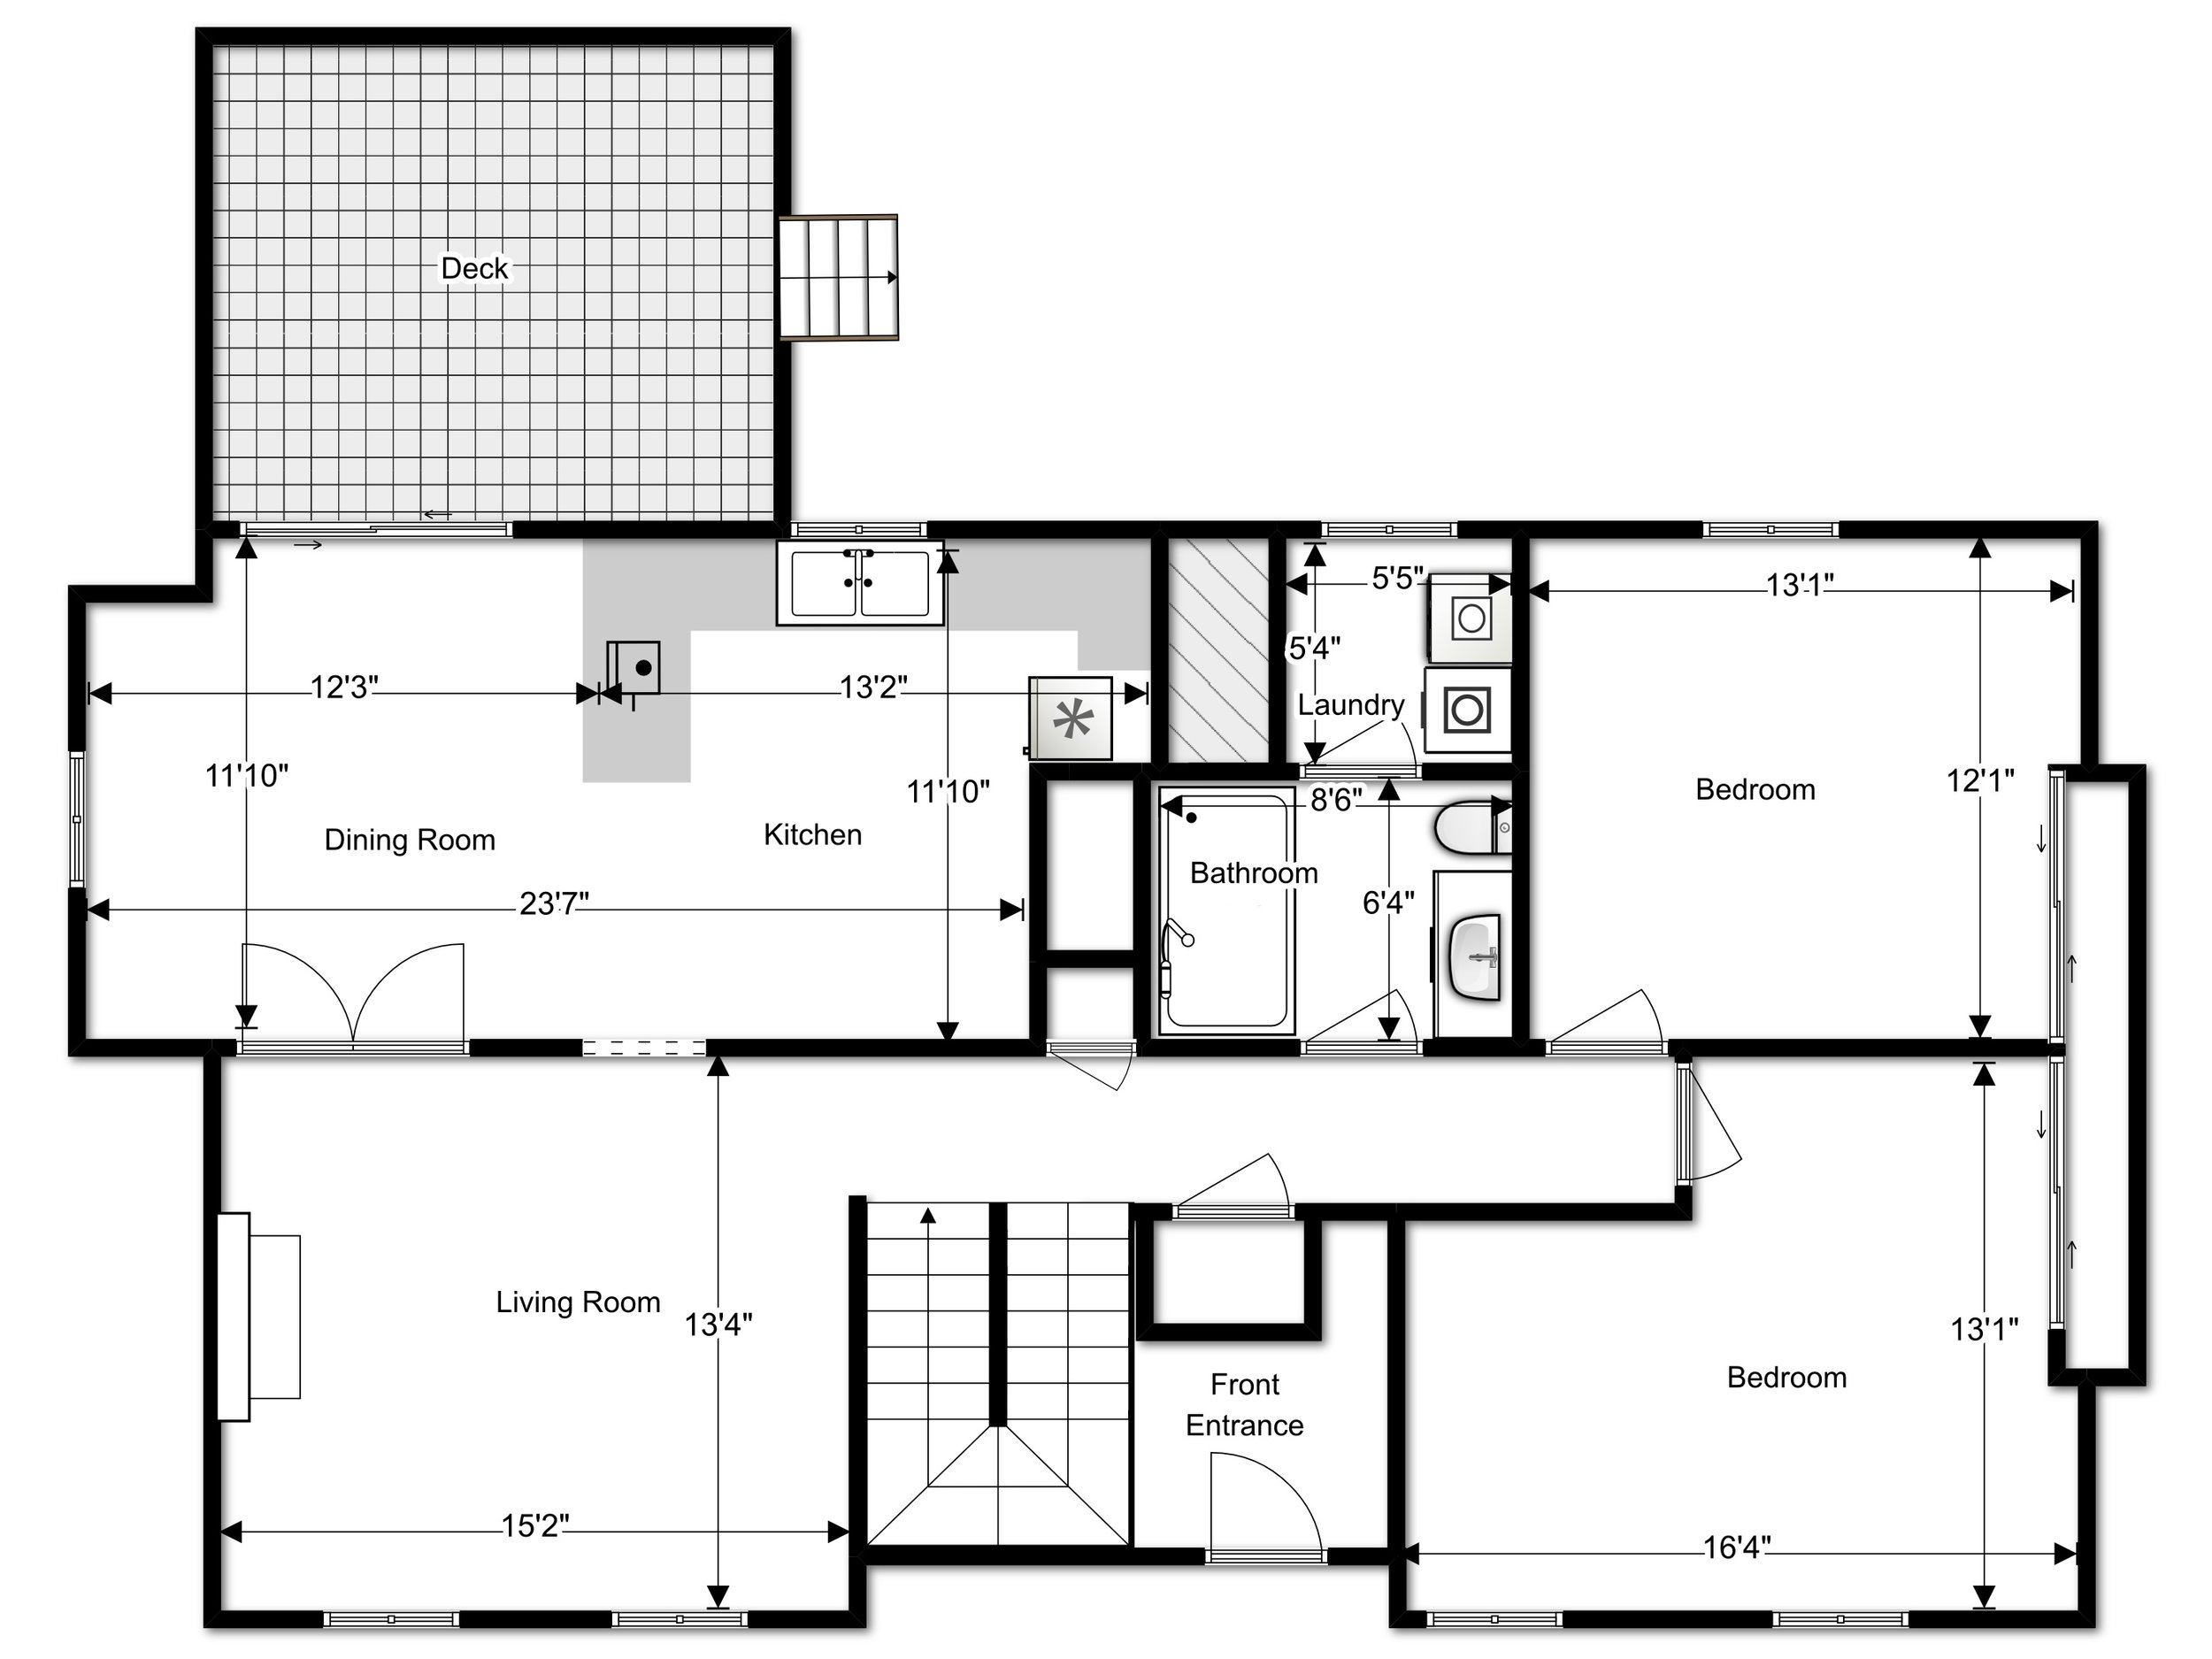 Laser Measured Floor Plans   Highly accurate and detailed floor plans of your listing, measured during or independent of a photo session. Floor plans are delivered as printable .pdf, as well as live, interactive web tours (if photos are also purchased.) Live floor plan tours are available in both custom branded with your branding, and un-branded to ensure compliance with MLS.